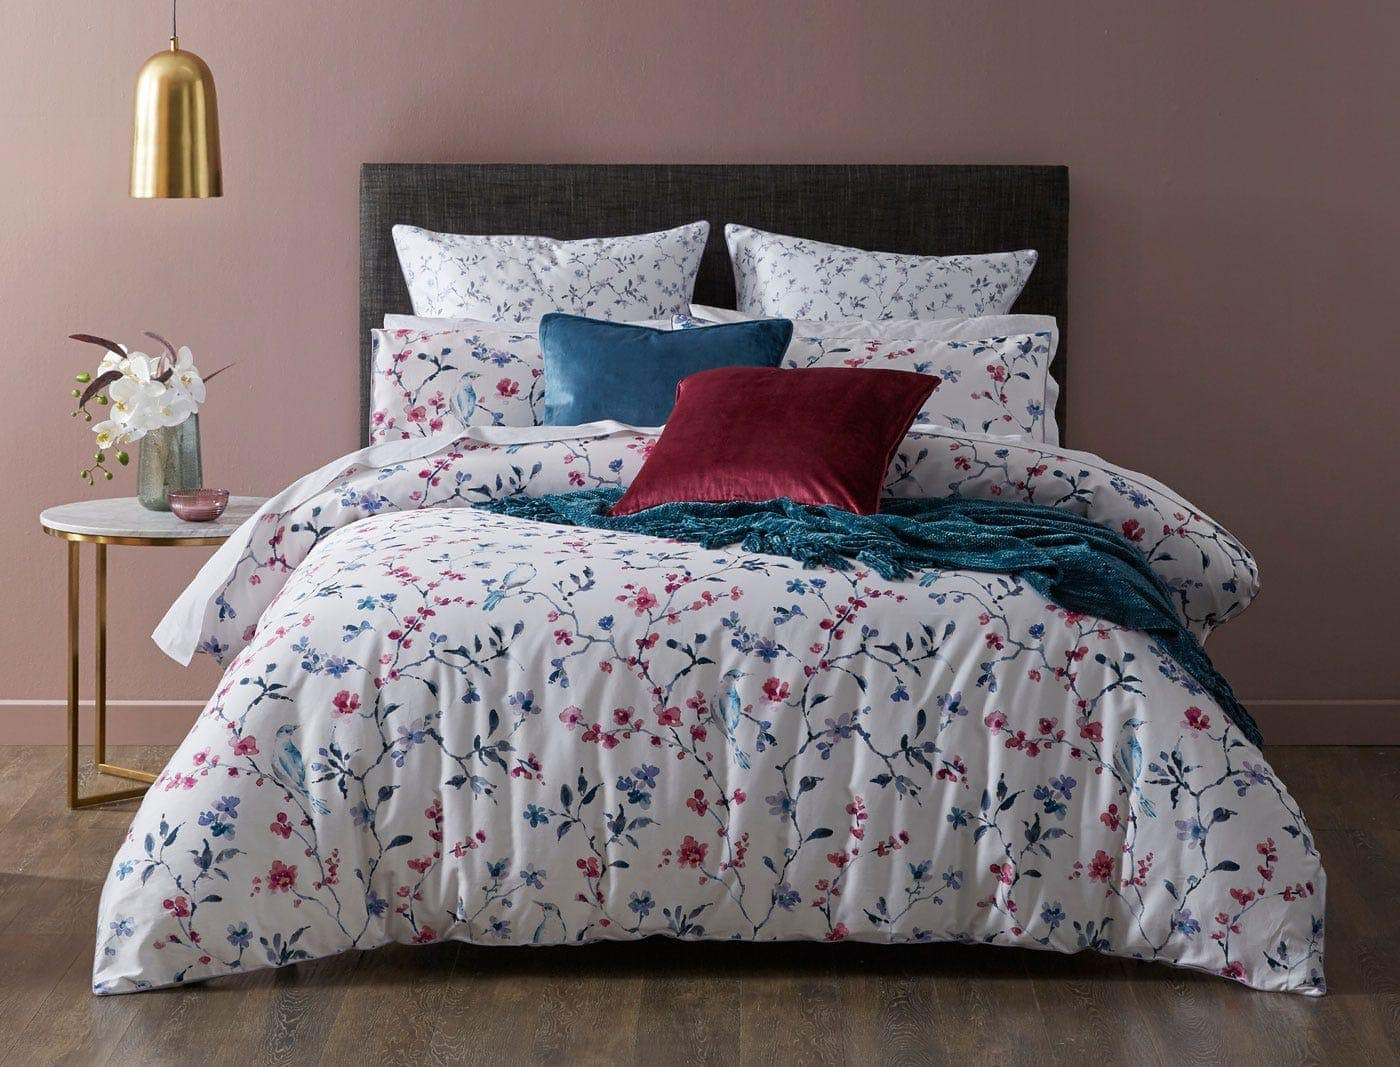 bed bath n table plumbloss white and pink floral quilt cover set in feminine bedroom